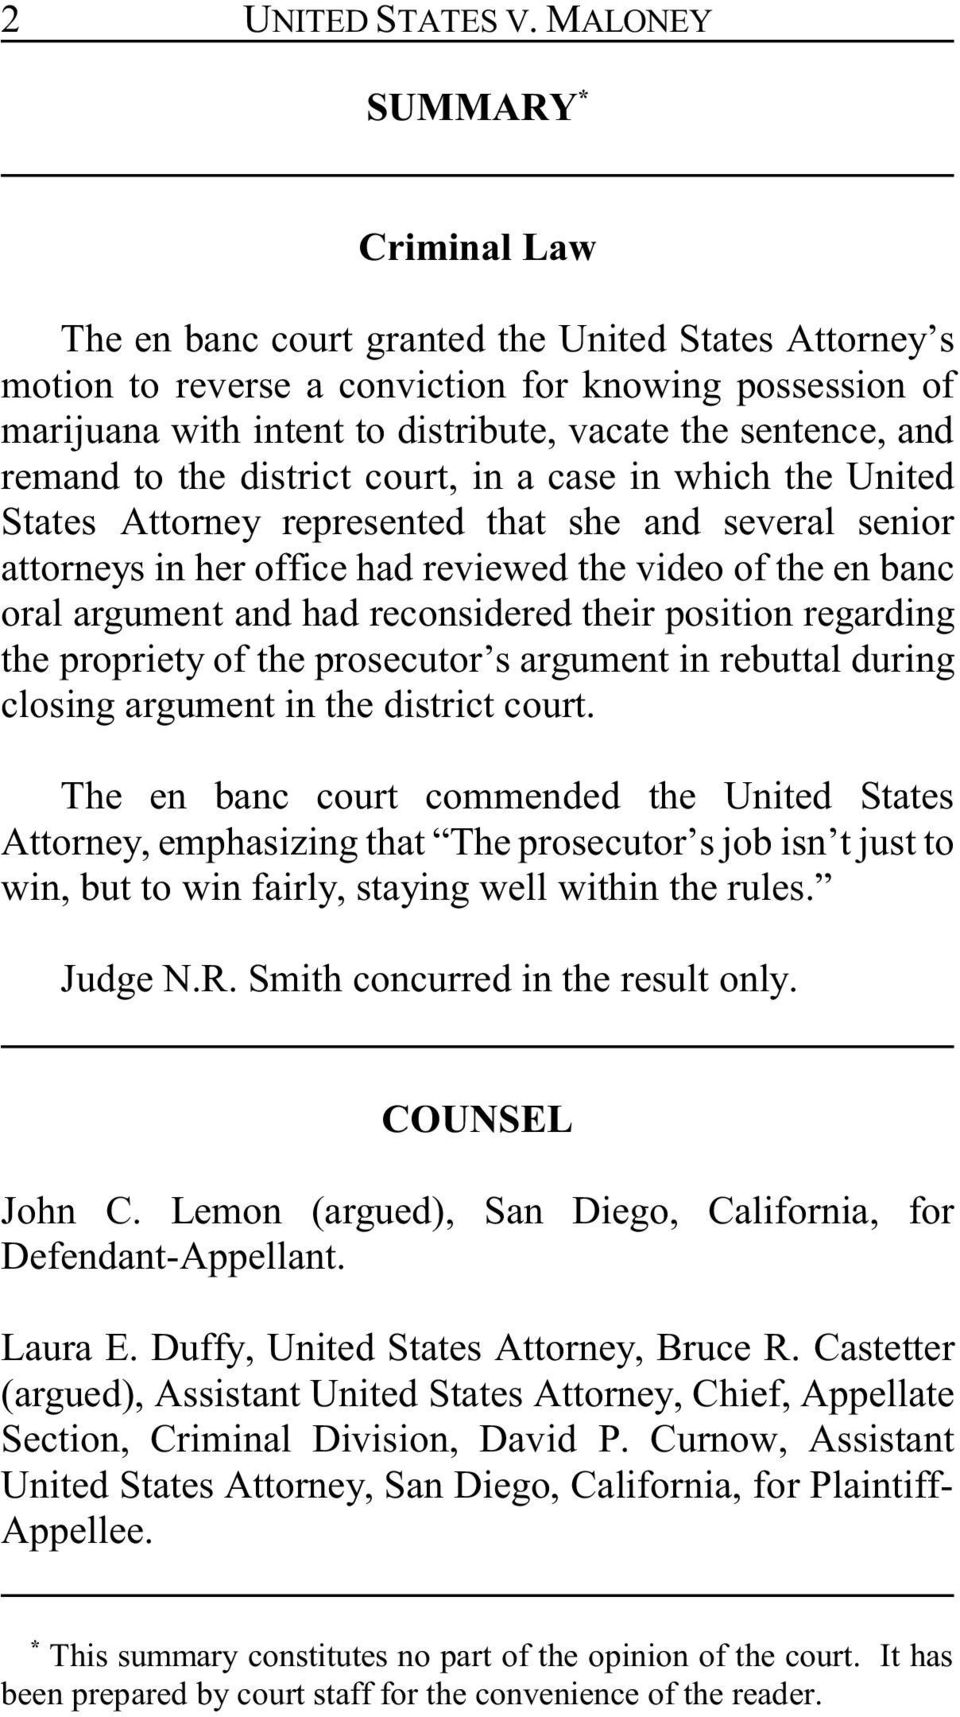 sentence, and remand to the district court, in a case in which the United States Attorney represented that she and several senior attorneys in her office had reviewed the video of the en banc oral